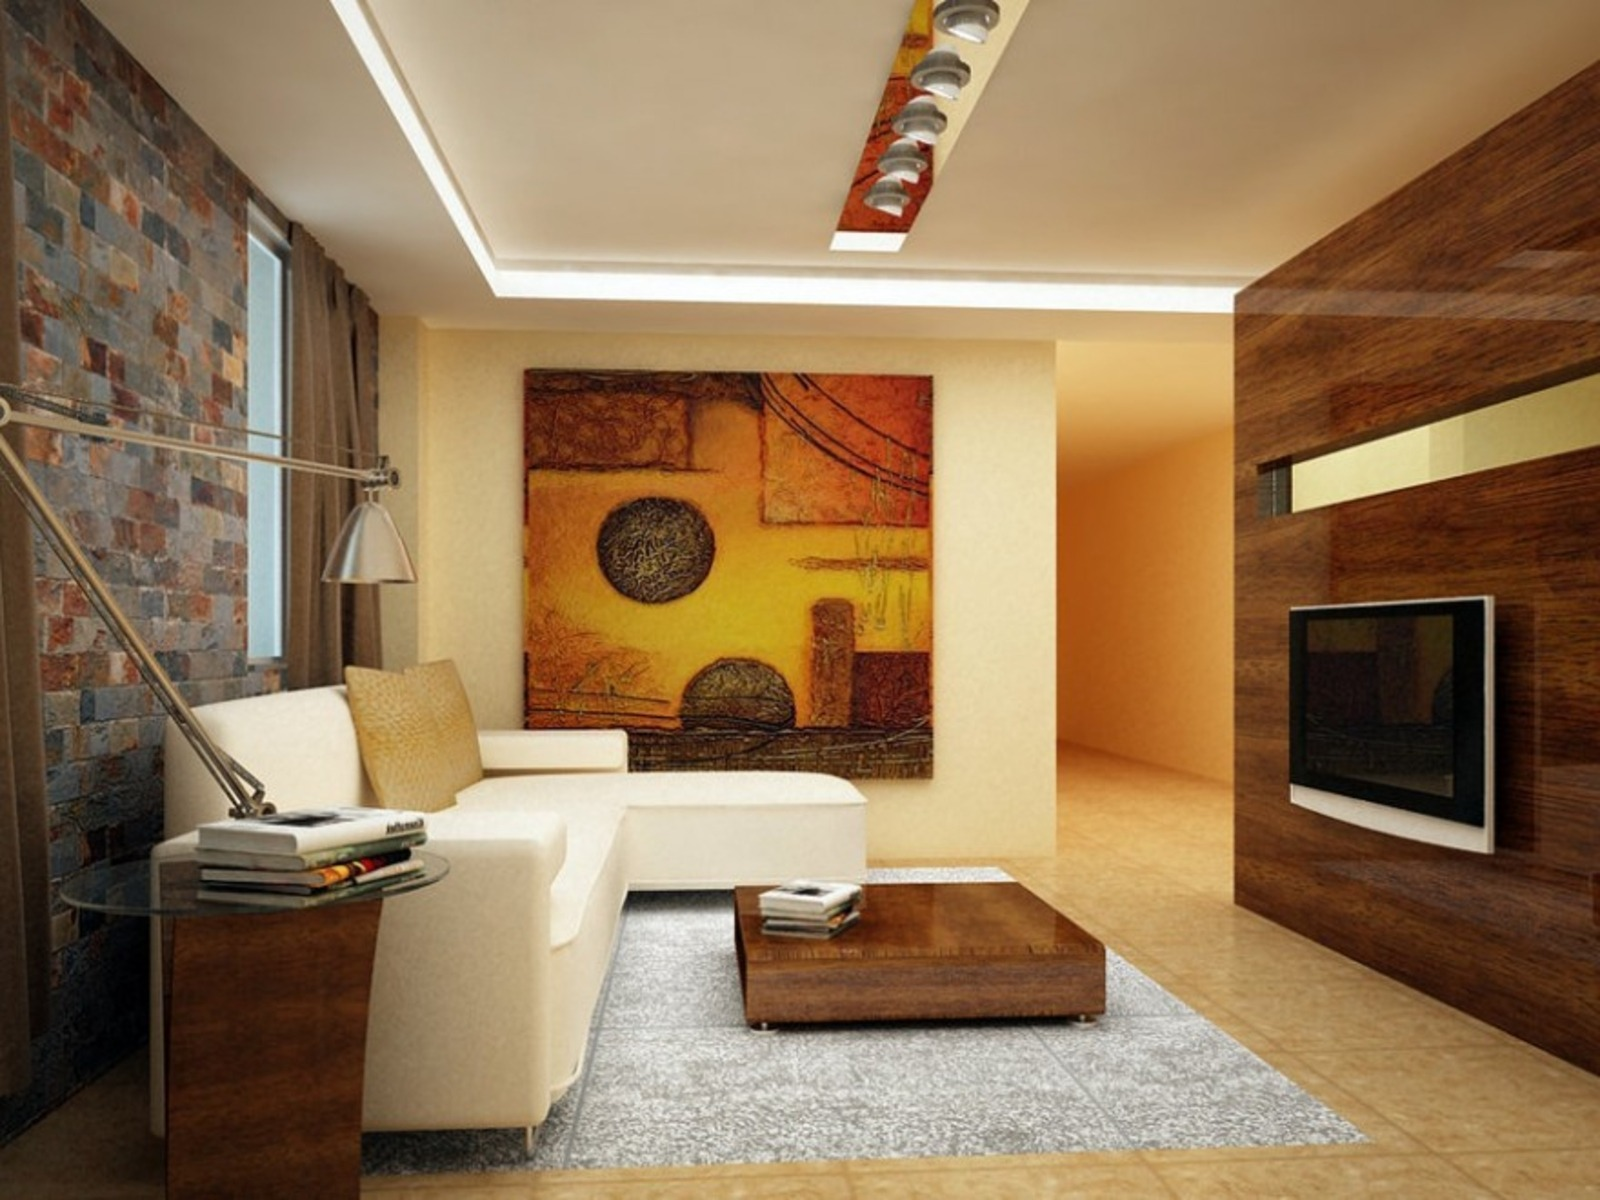 Exceptional 14+ Amazing Living Room Designs Indian Style, Interior And Decorating Ideas    ARCHLUX.NET